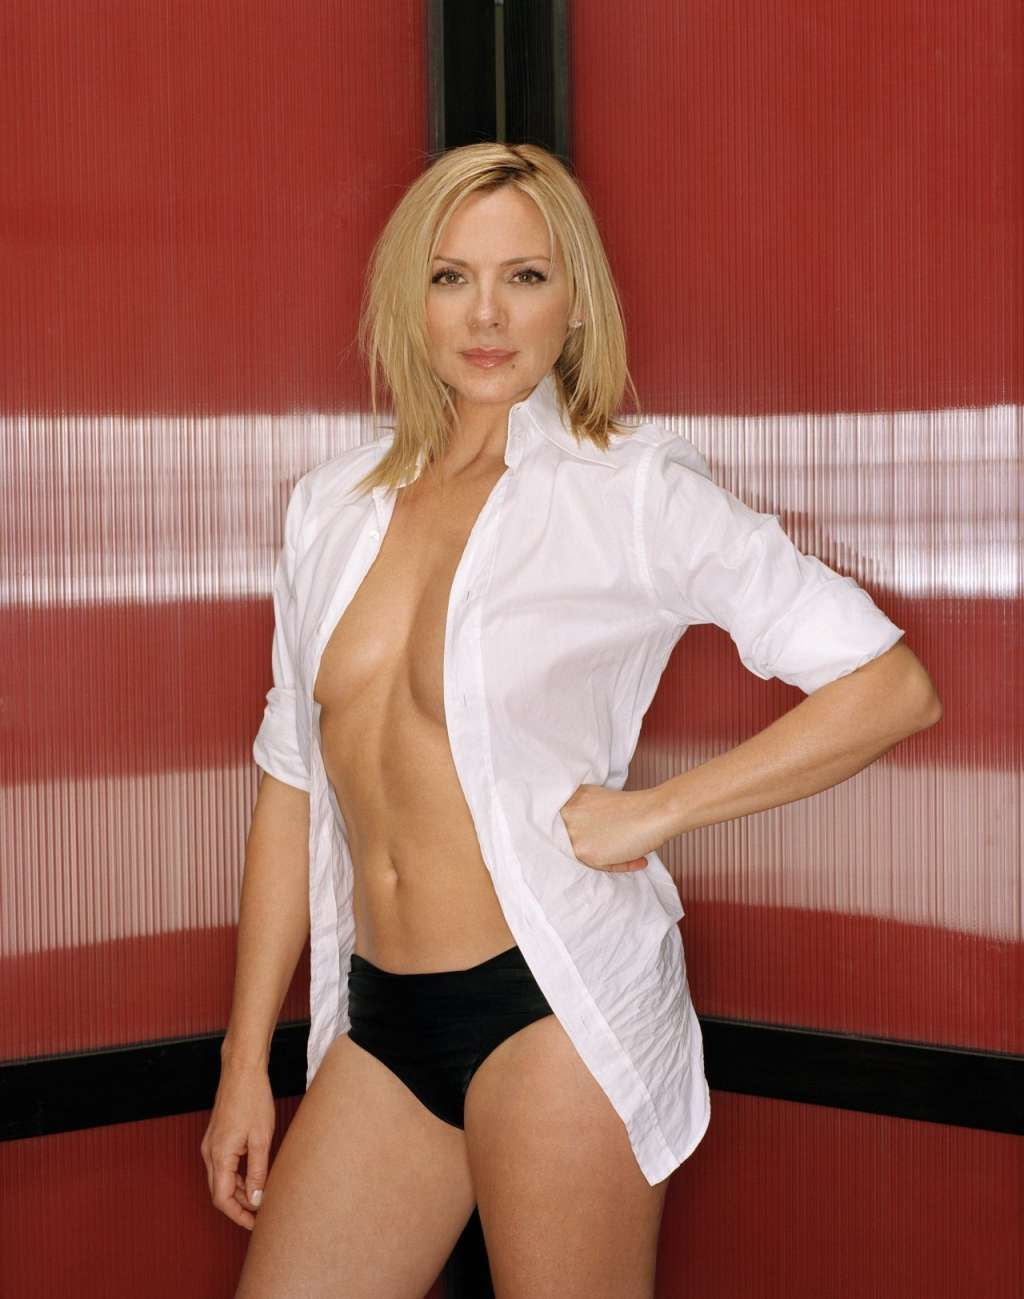 Hottest Kim Cattrall Photos - Kim Cattrall in White Open Blouse with  Underwear